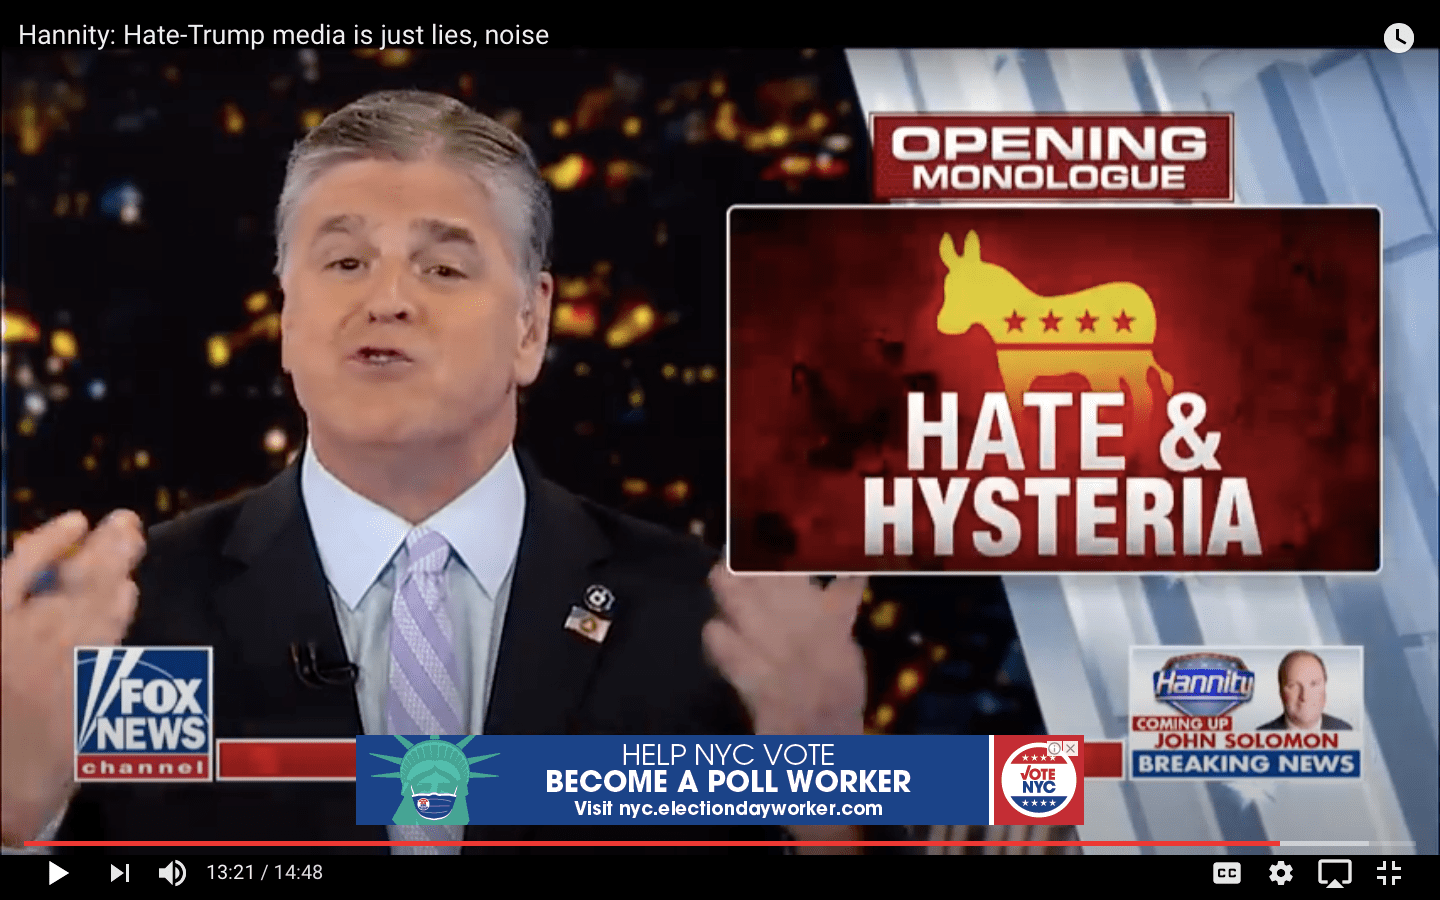 Screenshot of Sean Hannity on Fox News with text reading 'Hate & Hysteria' across the Democratic donkey symbol